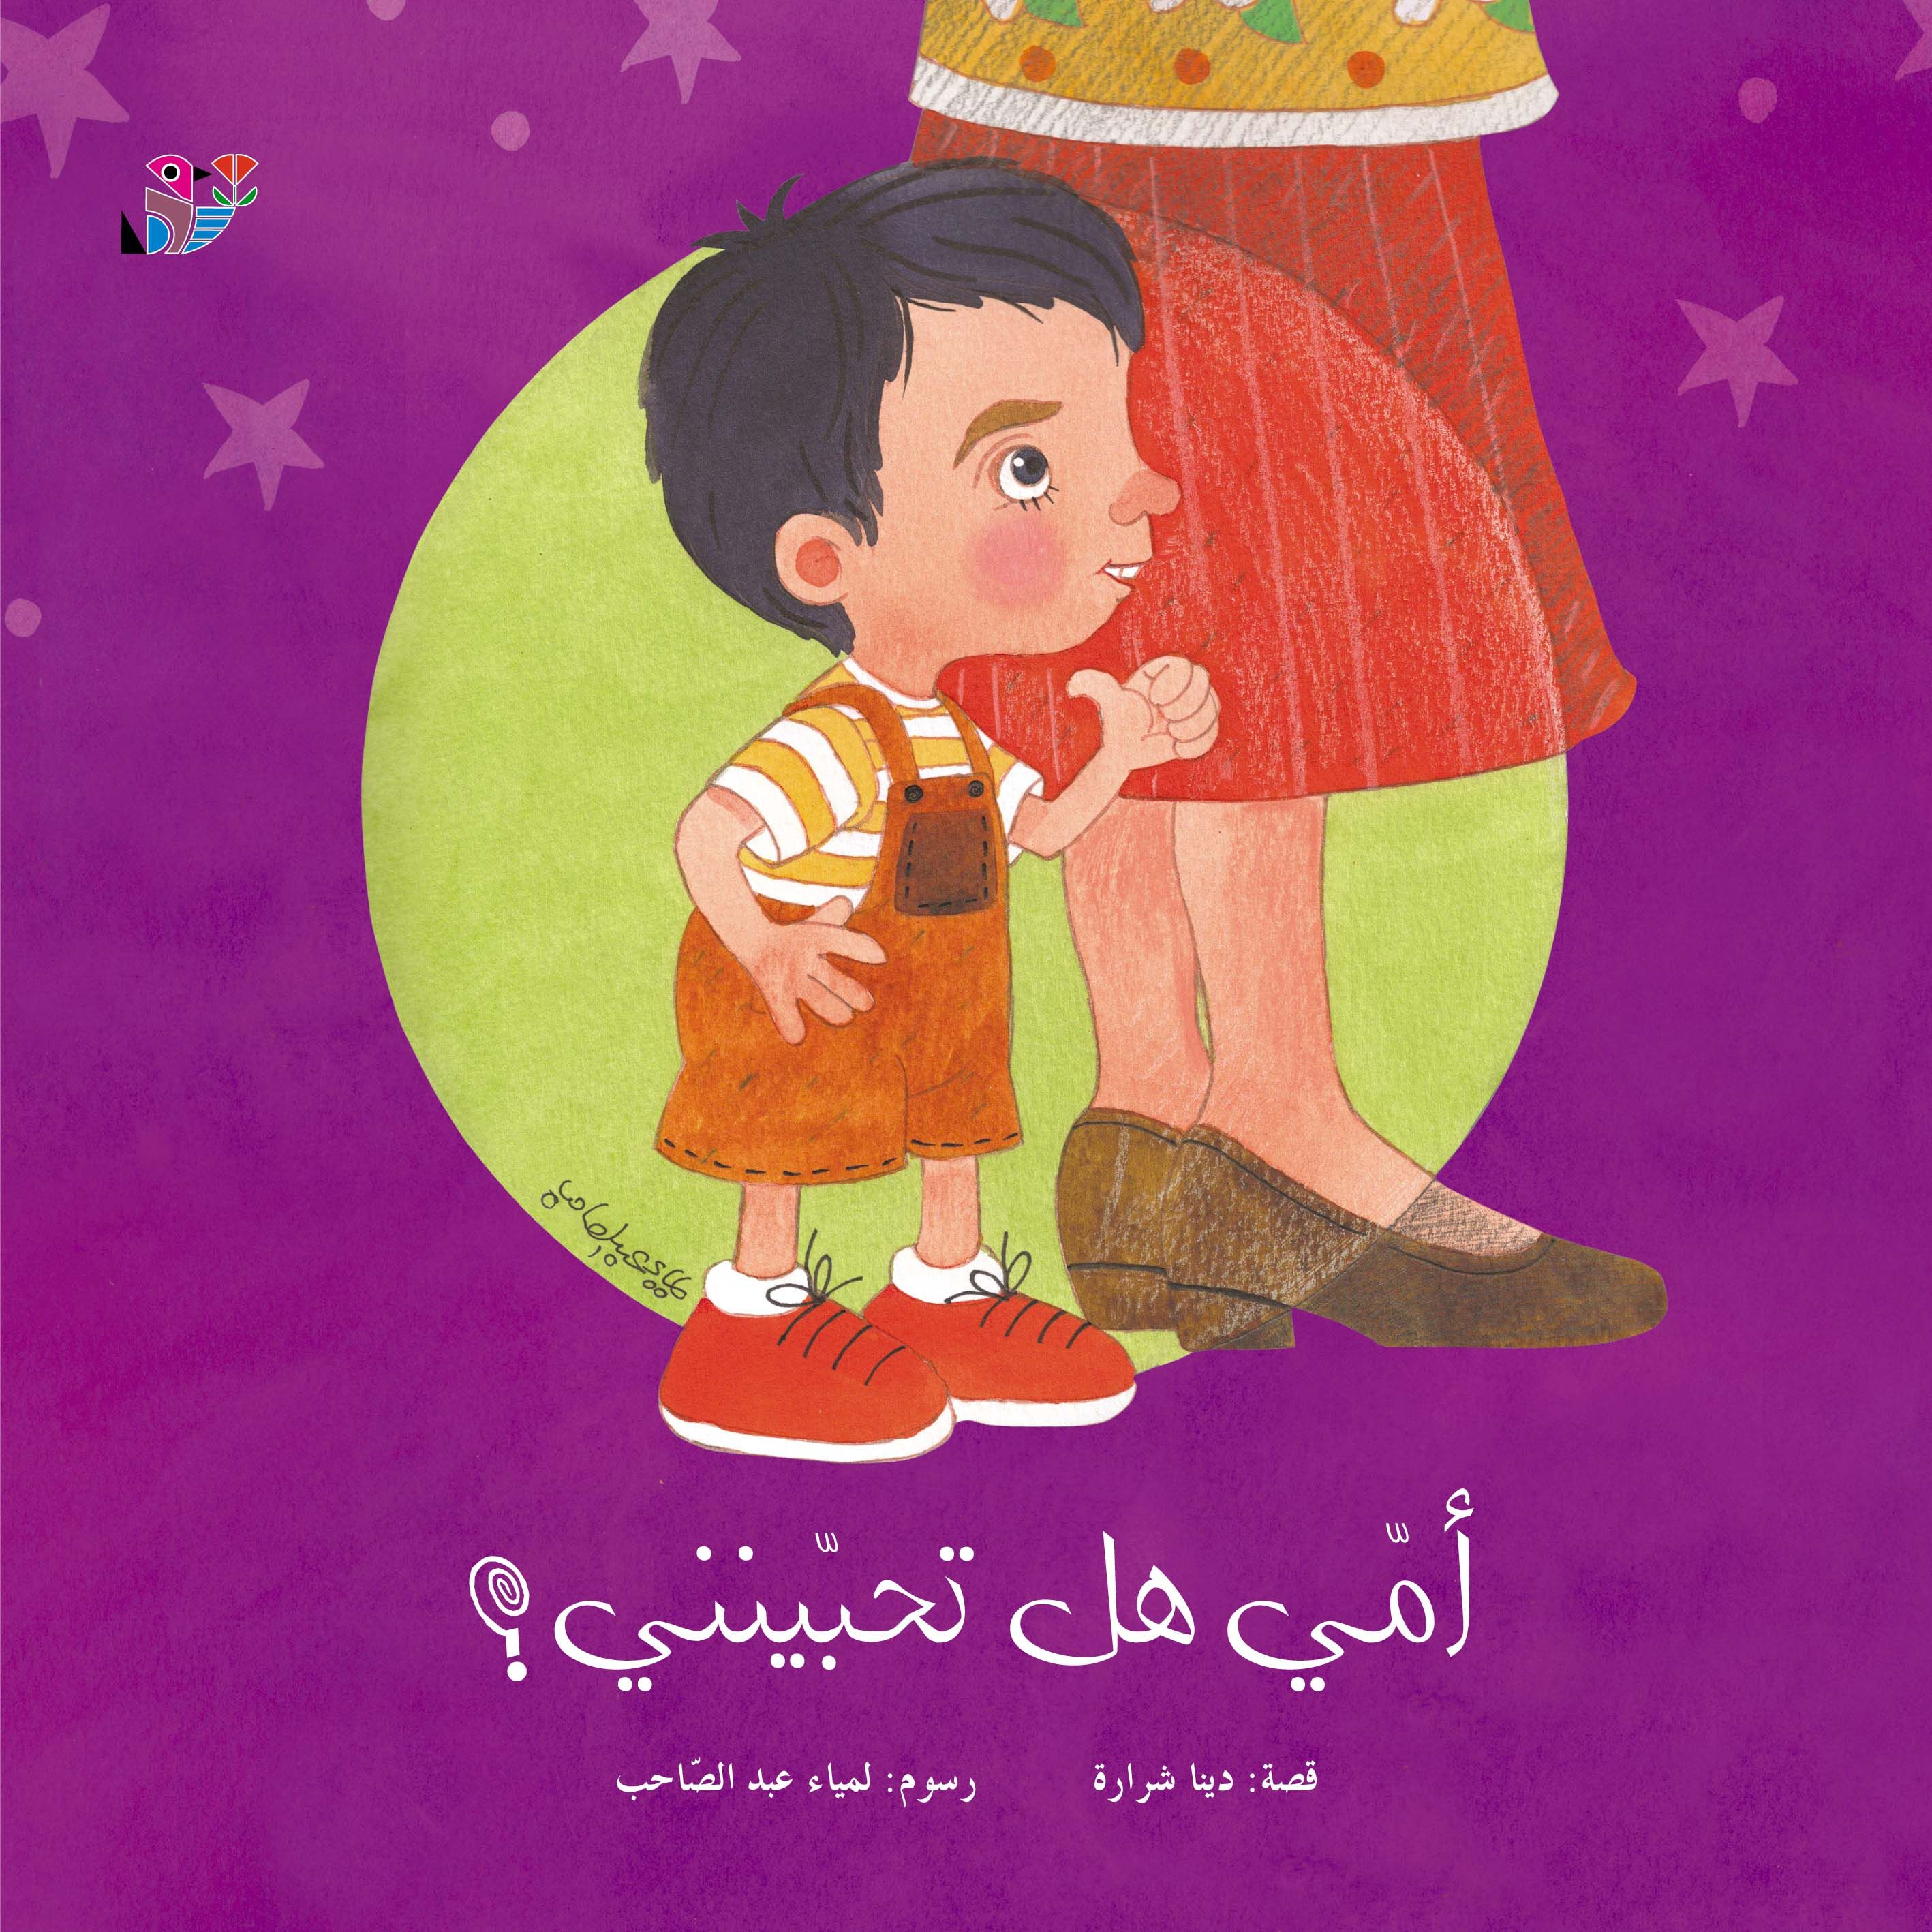 The Largest Arabic Online Bookstore For Kids Online Bookstore Cute Art Arabic Books